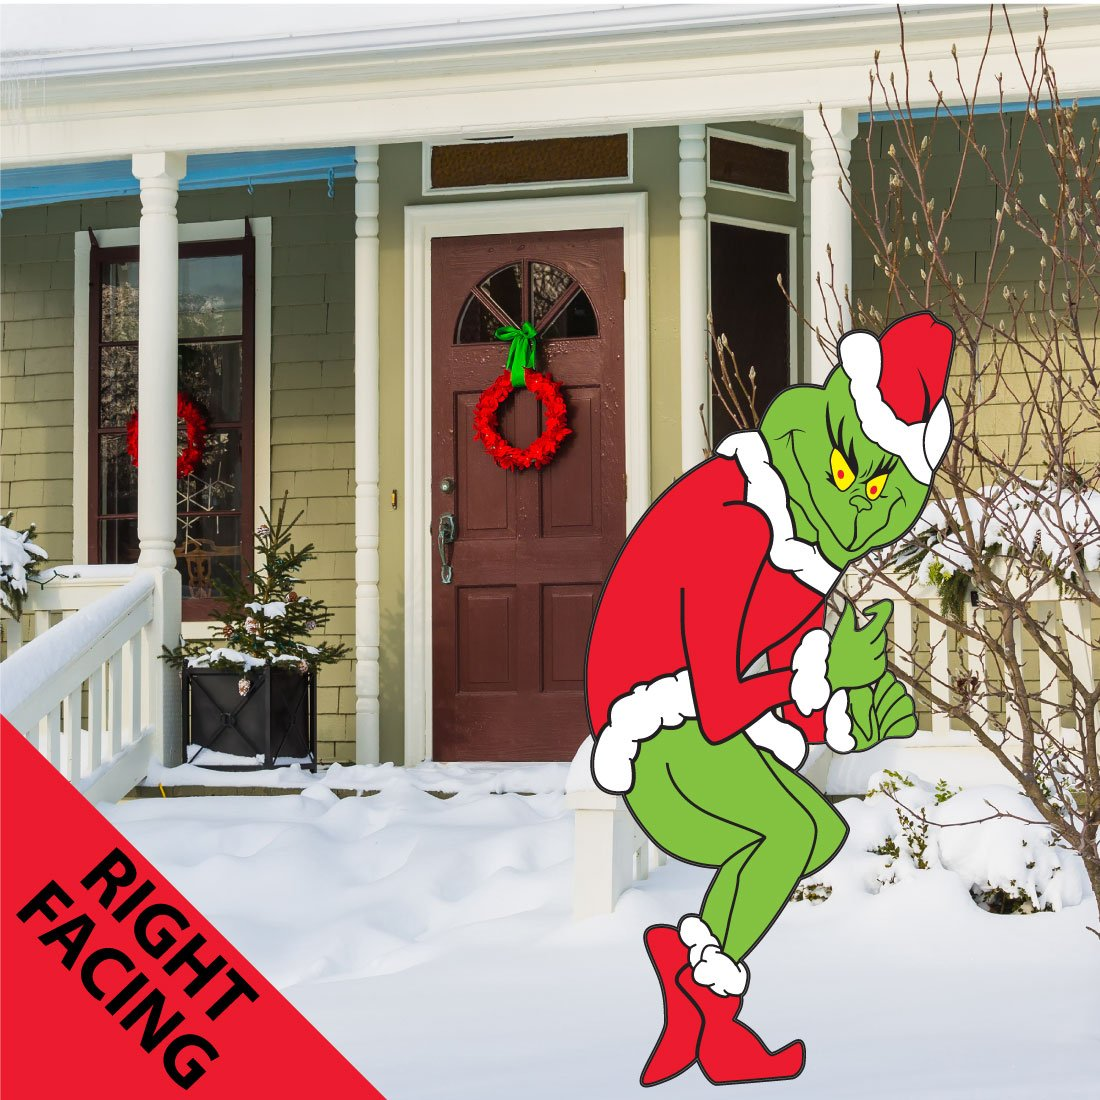 Grinch Stealing Christmas Lights.Grinch Stealing Christmas Lights Yard Art Funny Lawn